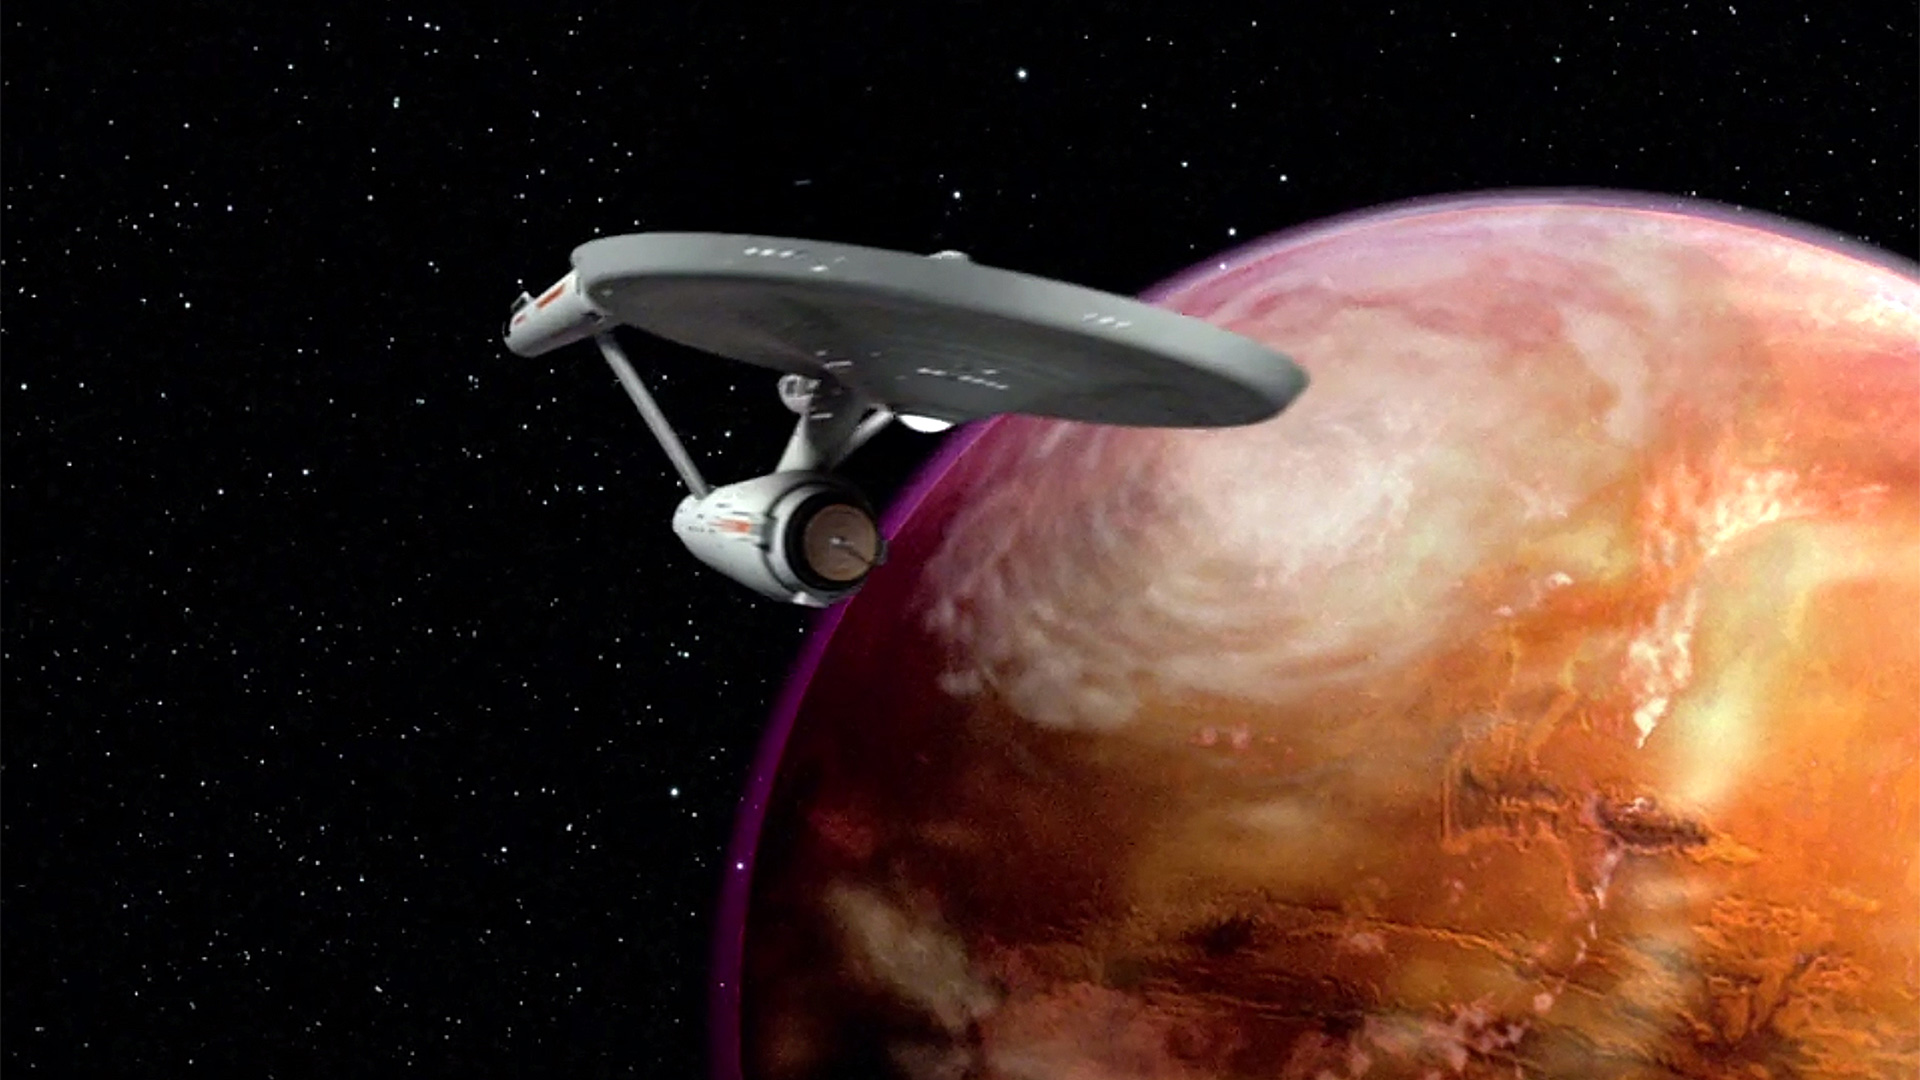 Star Trek: The Final Frontier, 1989, directed by William Shatner based on the television series Star Trek created by Gene Roddenberry | Art movements | STIRworld